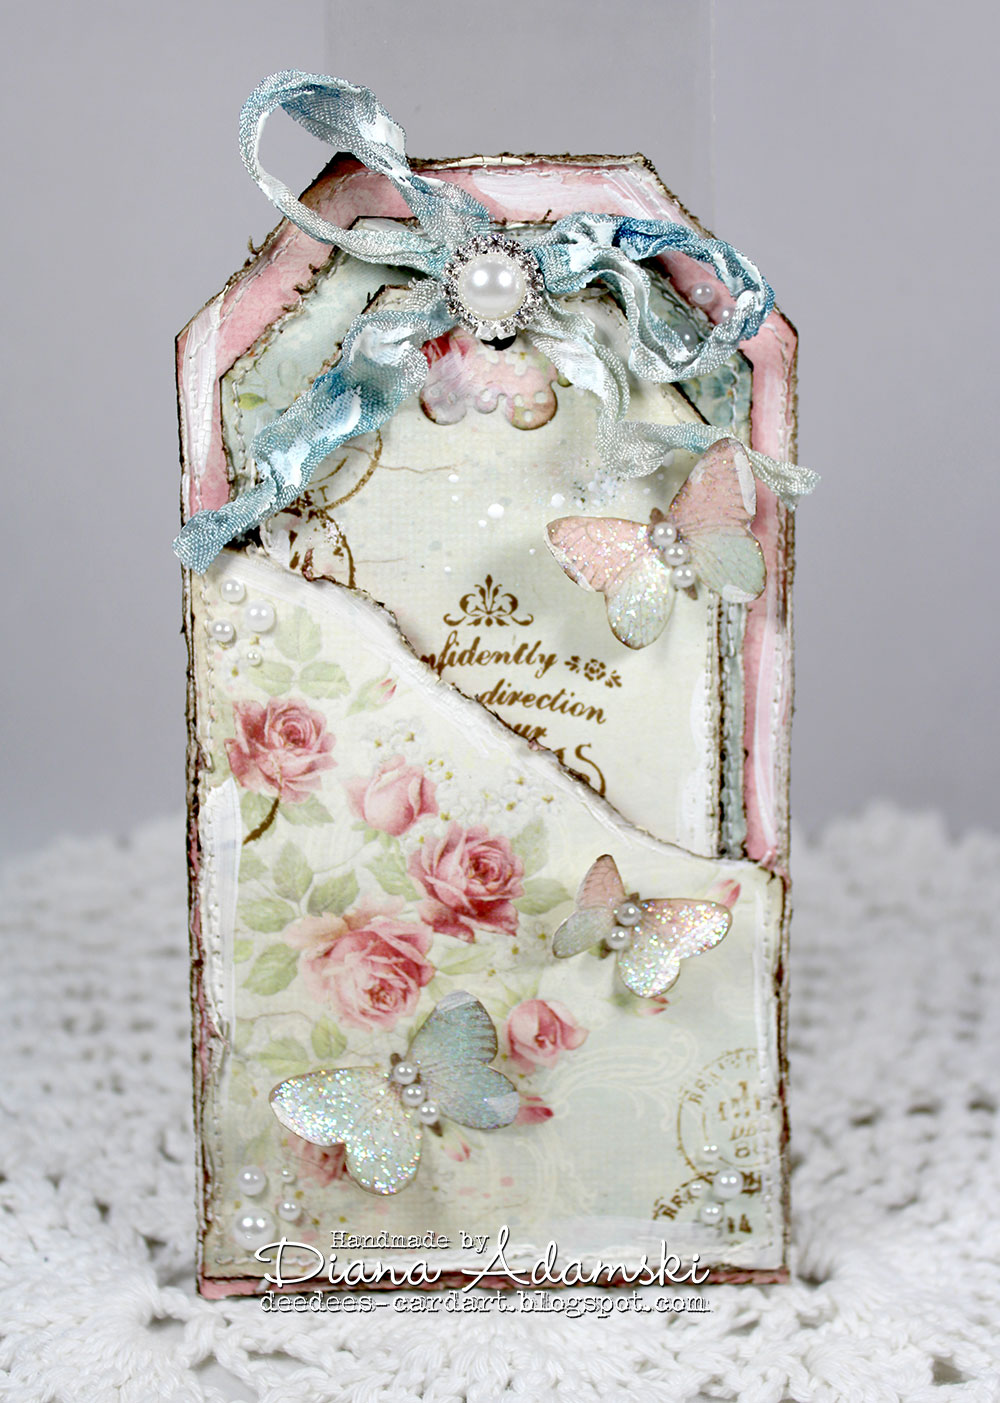 Live love crafts 39 inspiration and challenge blog tag - Vintage and chic love ...